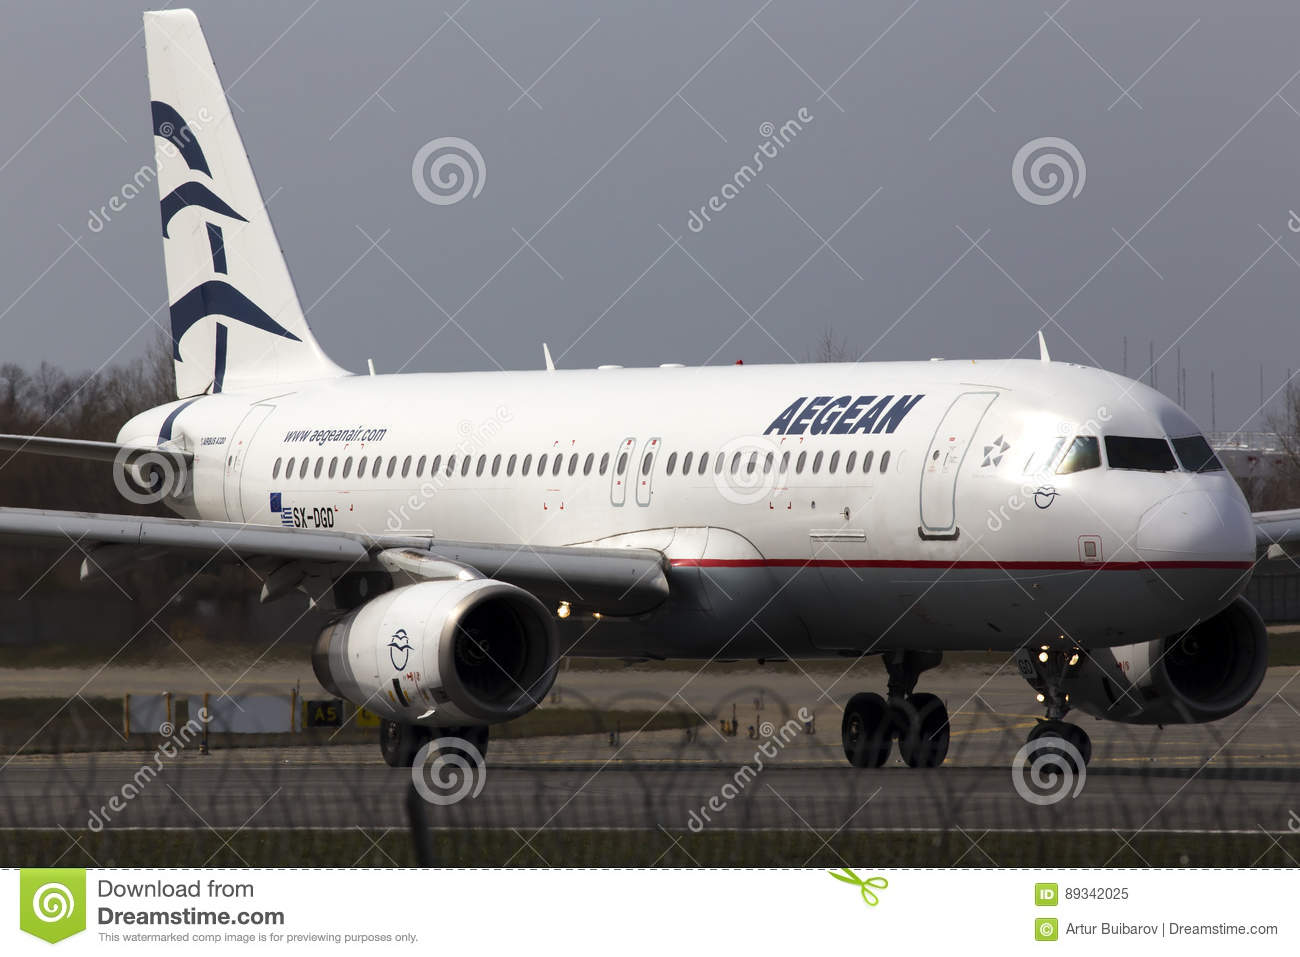 Aegean Airlines Airbus A320-200 aircraft running on the runway